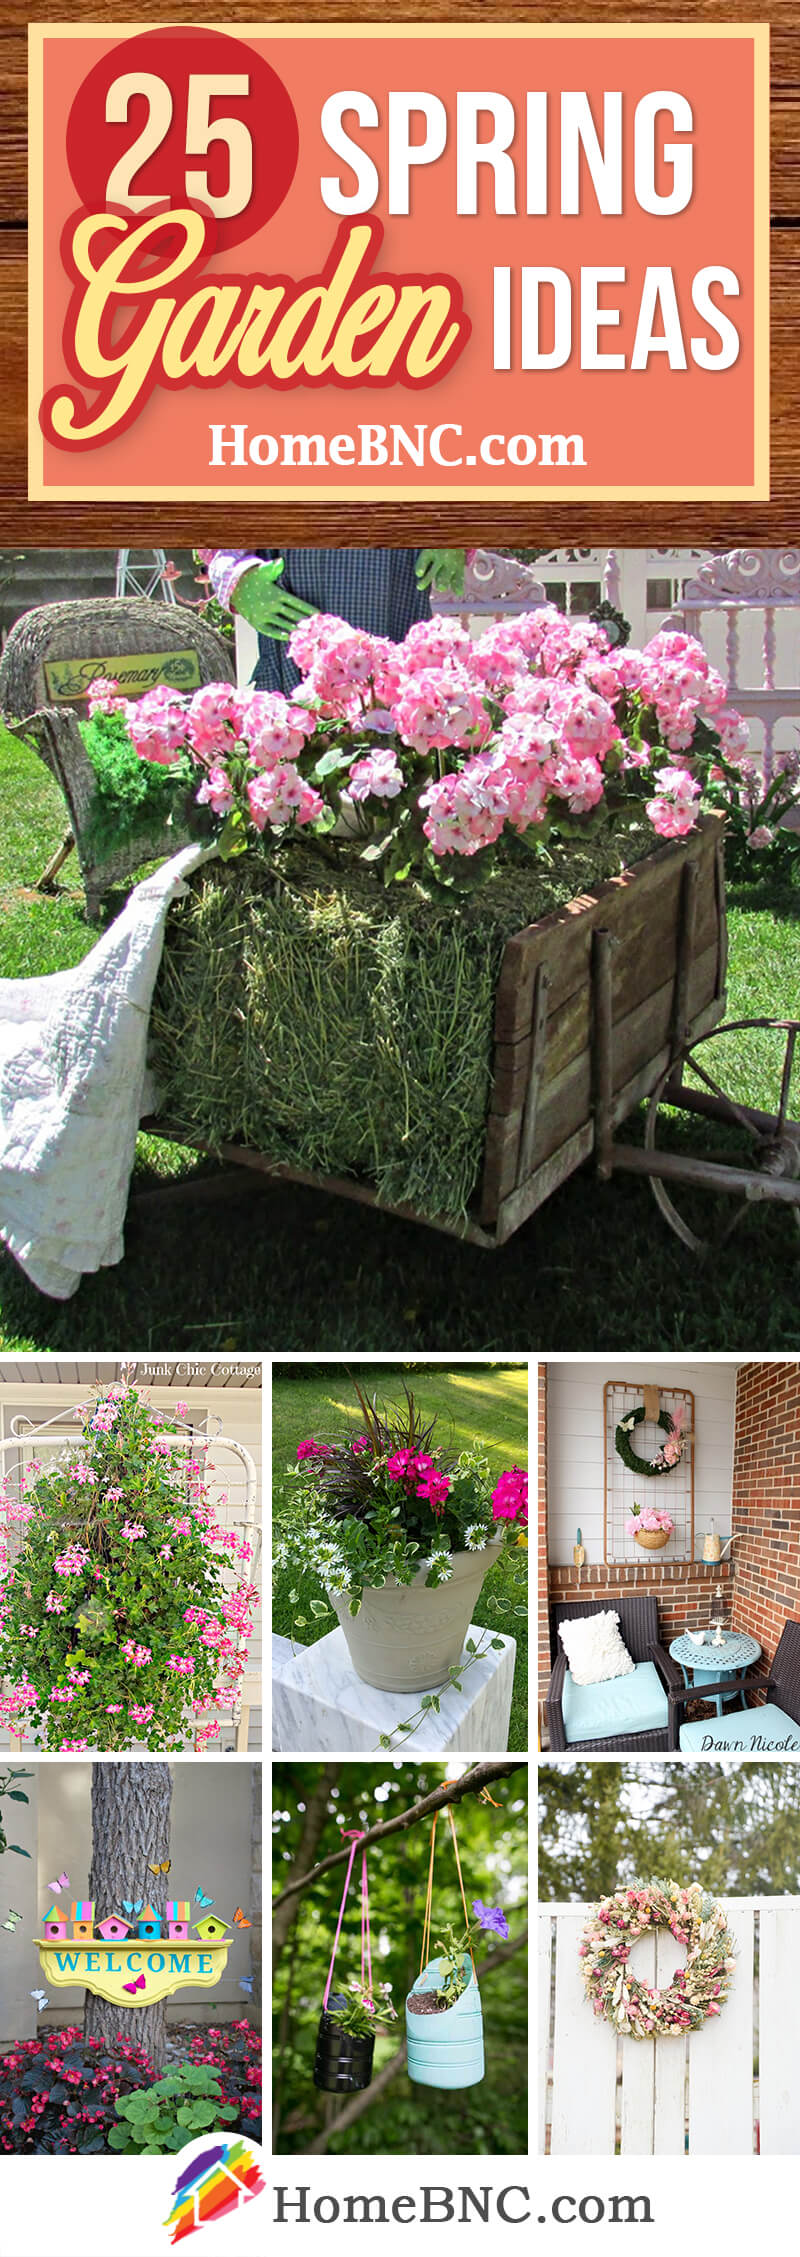 Best Spring Garden Ideas